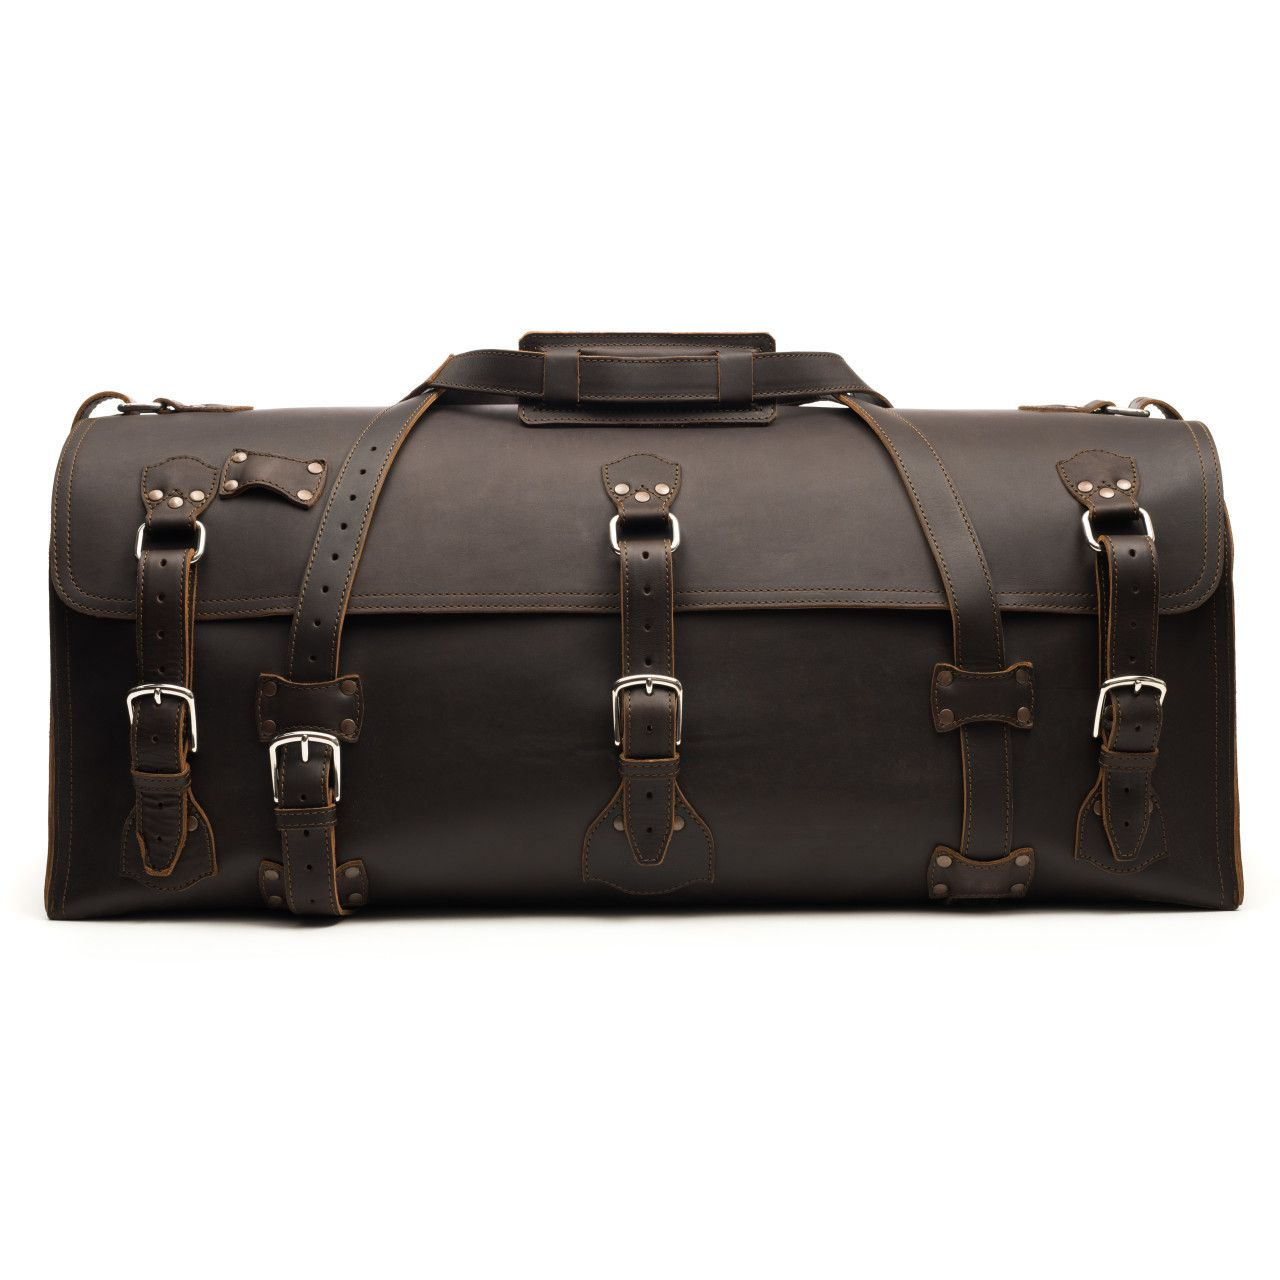 large leather duffel bag in dark coffee brown leather